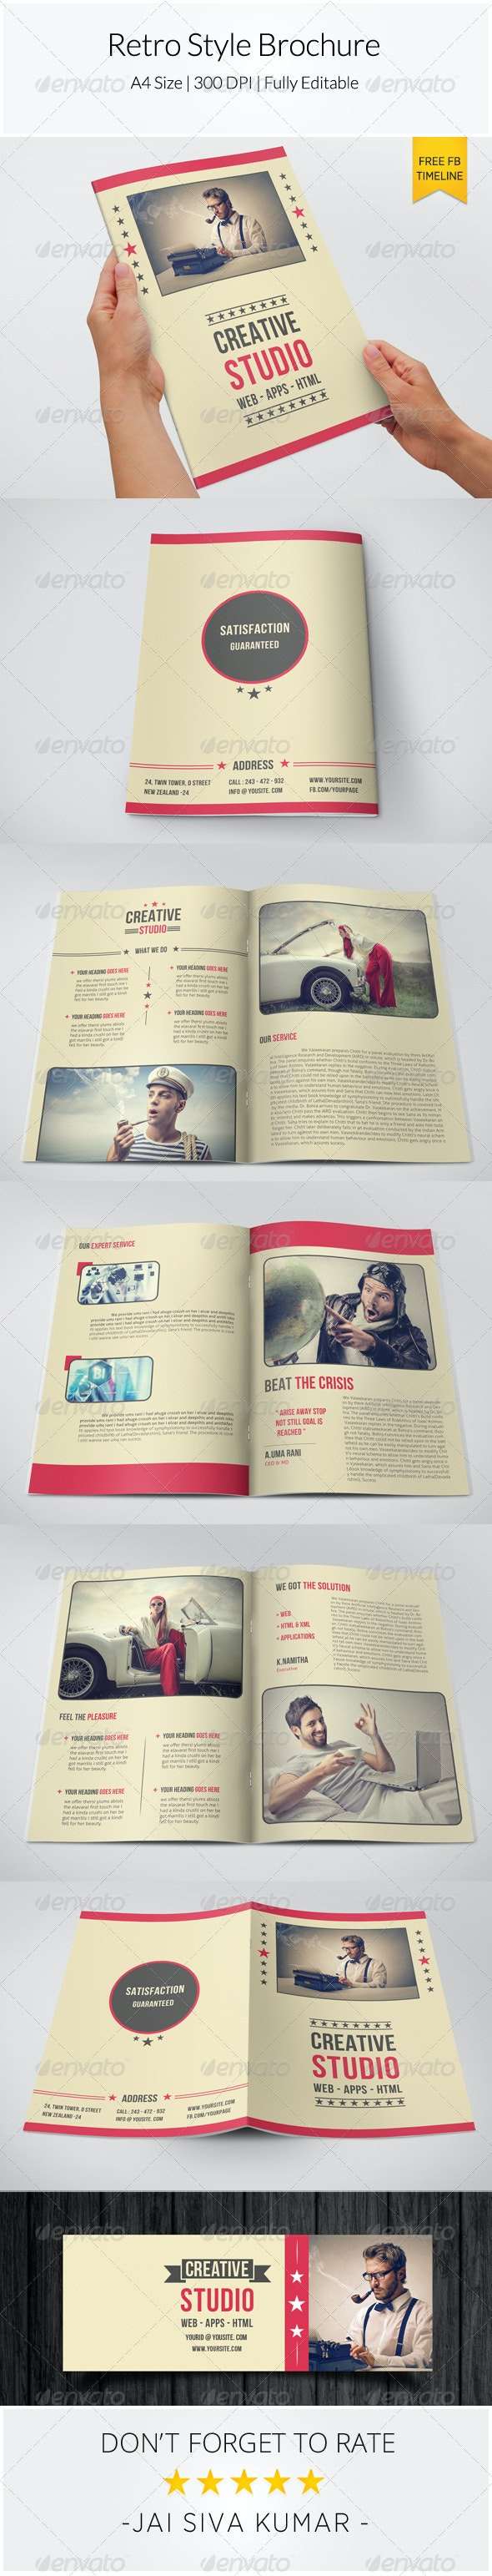 Retro Style Brochure Template - Informational Brochures